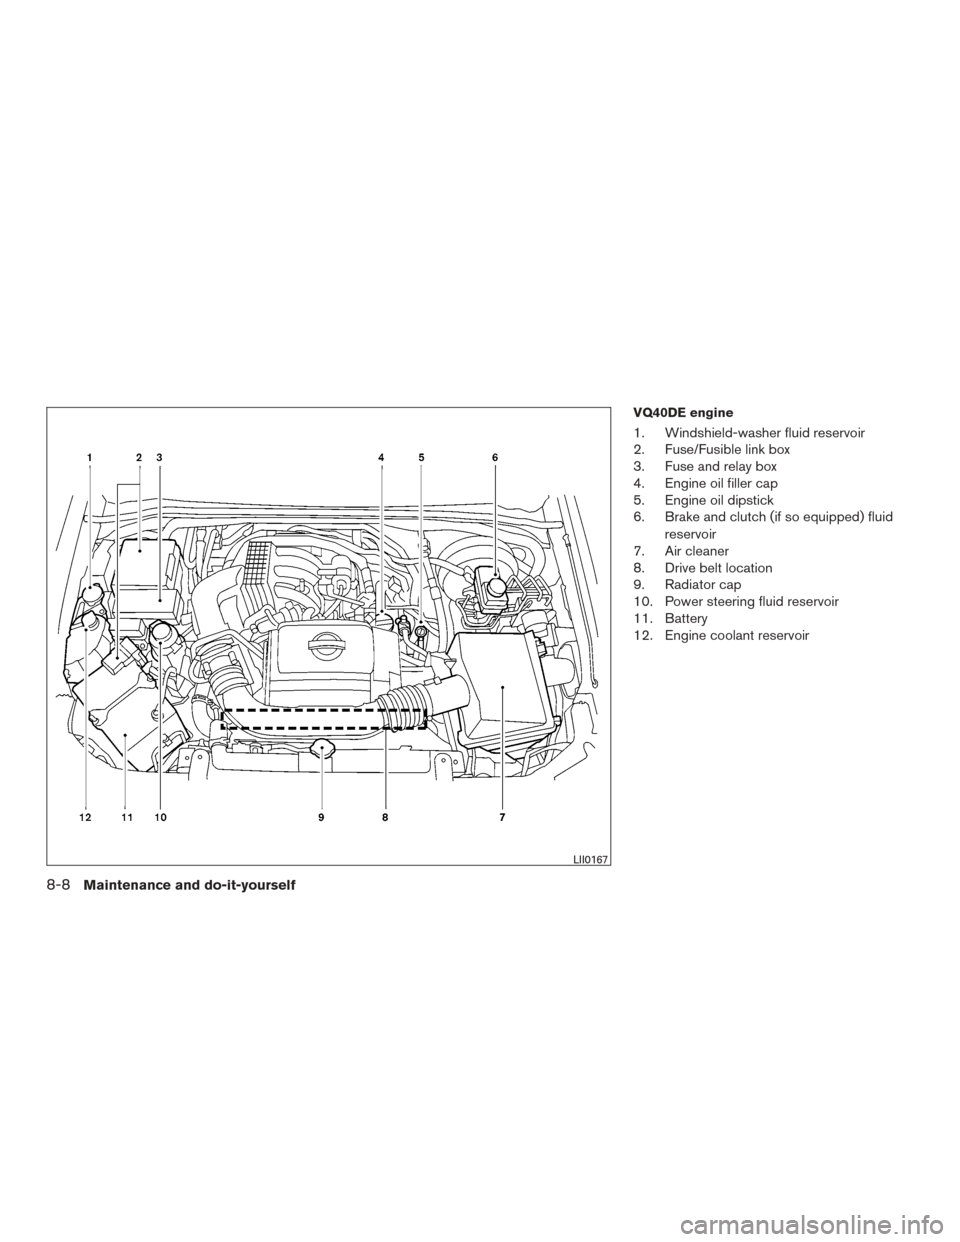 2014 Vw Cc Fuse Box Diagram Another Blog About Wiring Jetta Engine Info Auto Passat